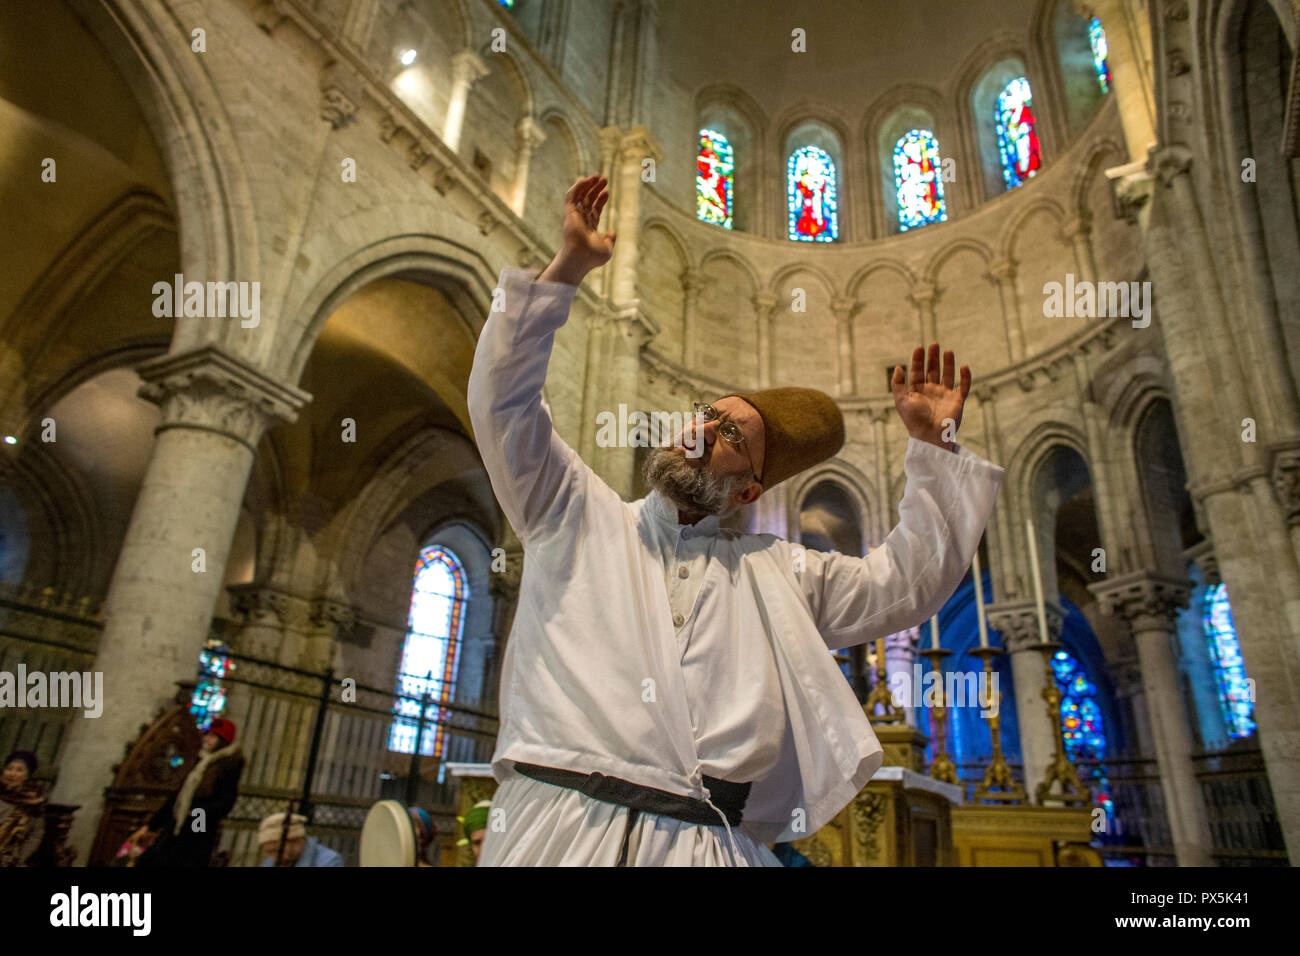 Sufi muslim wedding in St Nicolas's catholic church, Blois, France. Whirling dervish. - Stock Image